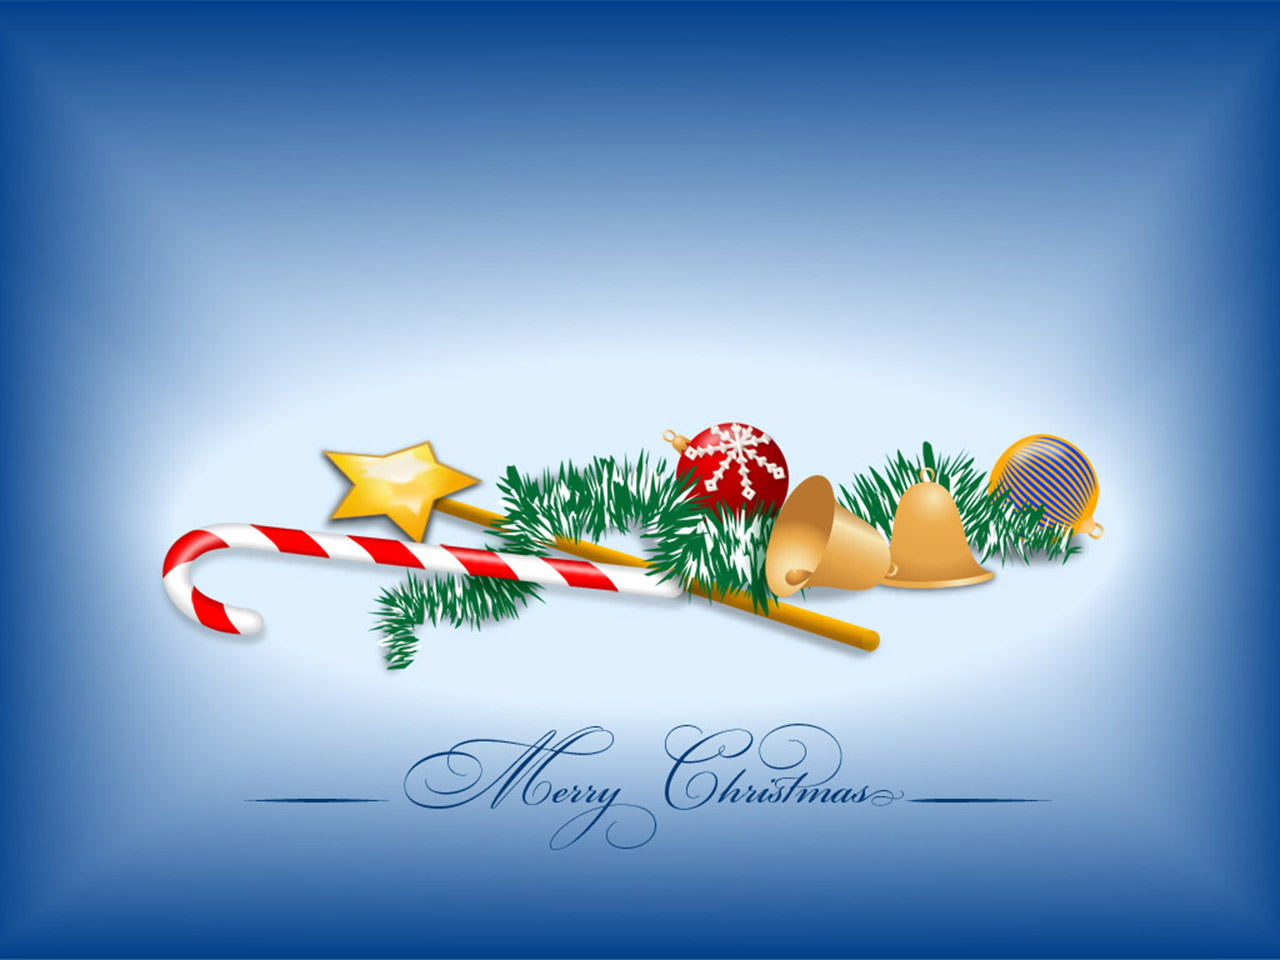 http://3.bp.blogspot.com/-VLHZwBC5vxg/Tqfi615mtEI/AAAAAAAAFSw/WanmLOhiq8s/s1600/Christmas+HD+desktop+wallpaper+Merry-Christmas-Wallpaper.jpg